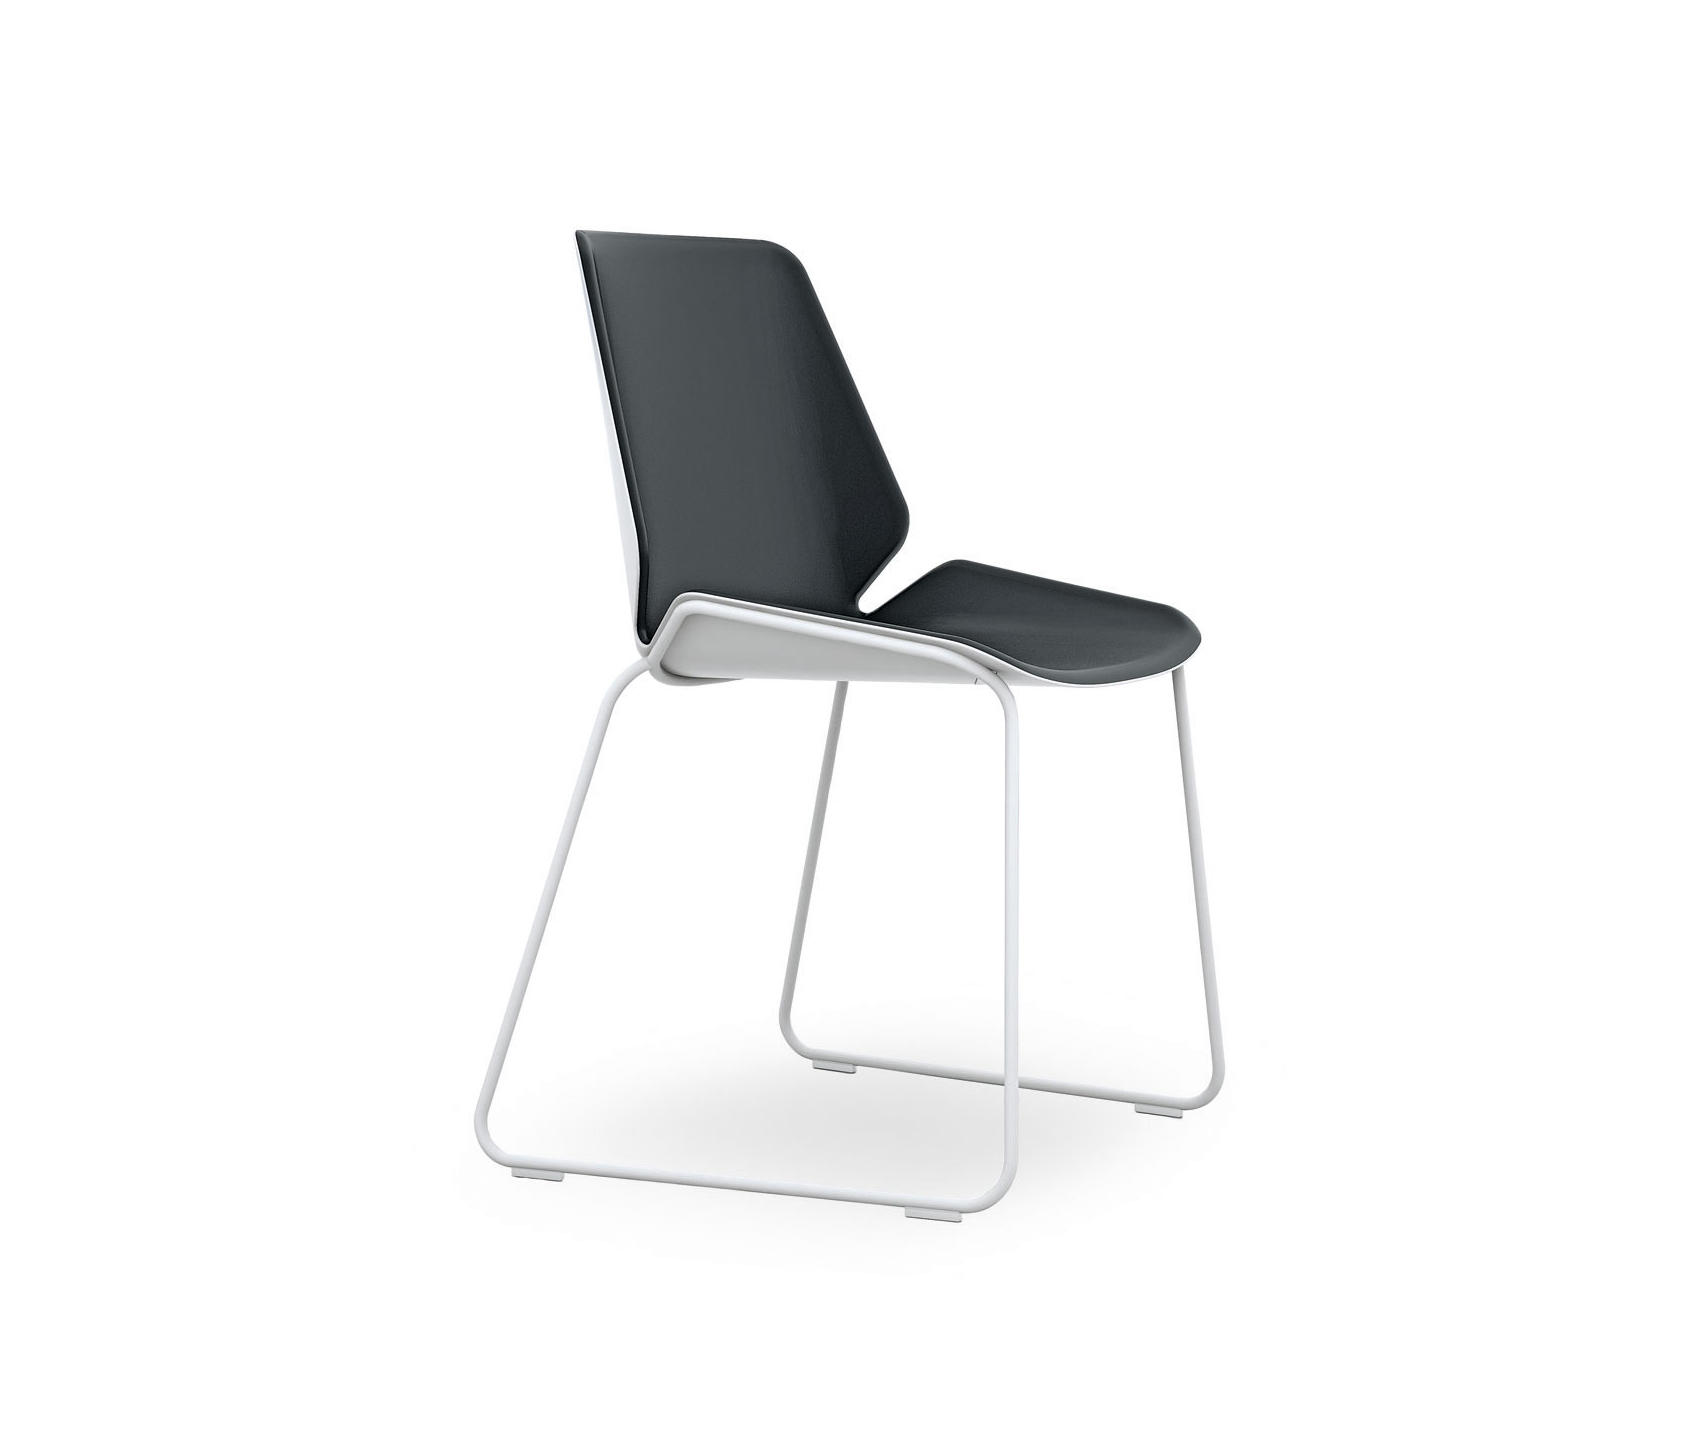 FOLD CHAIR Multipurpose chairs from Poliform